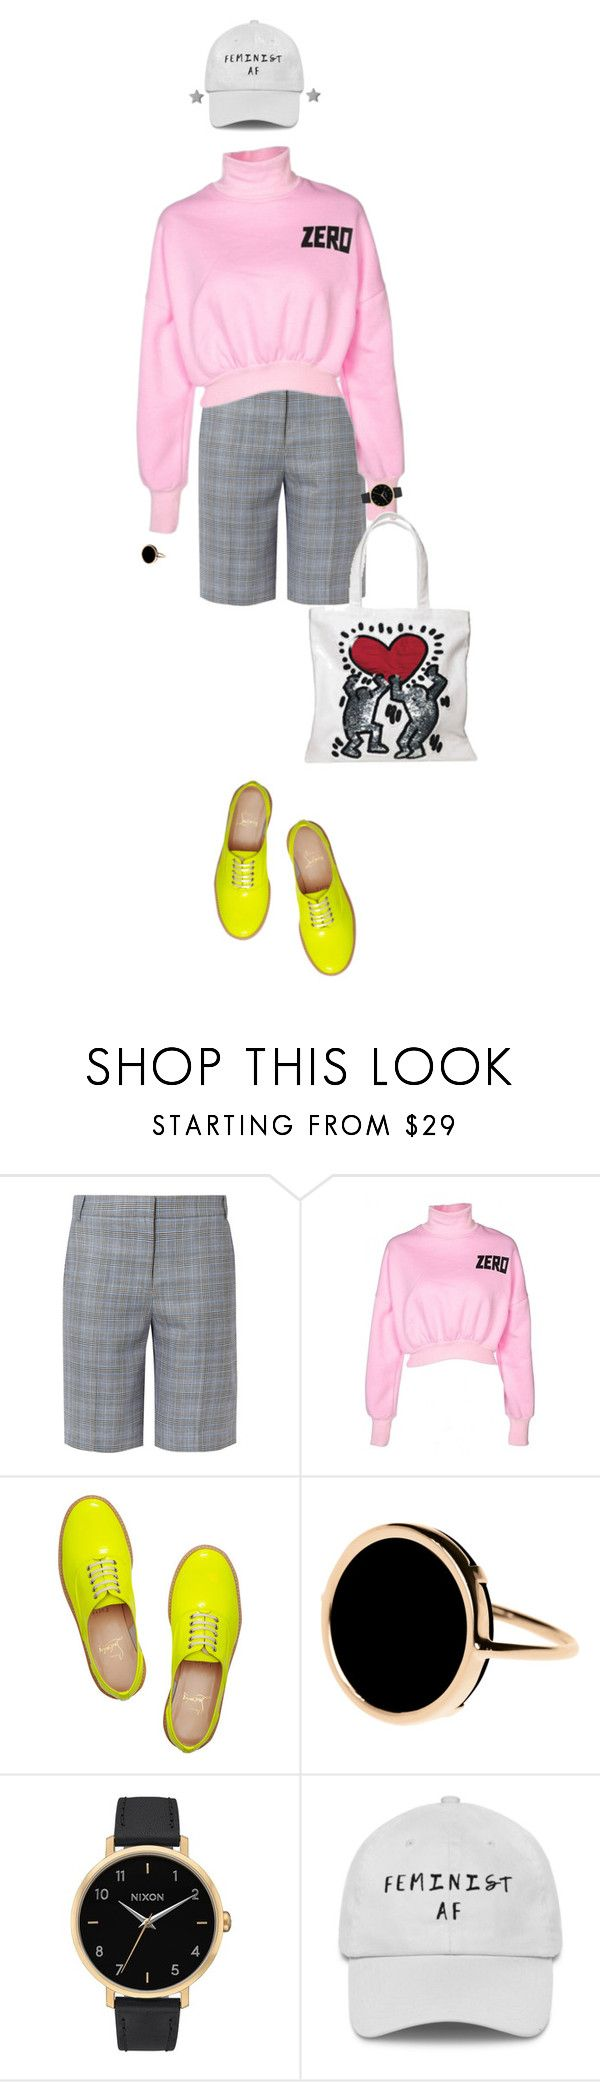 """""""How soon is now?"""" by merryl-key ❤ liked on Polyvore featuring TIBI, WithChic, Christian Louboutin, Ginette NY, Nixon, Gucci, fluro, pinkandgrey and nonbinary"""